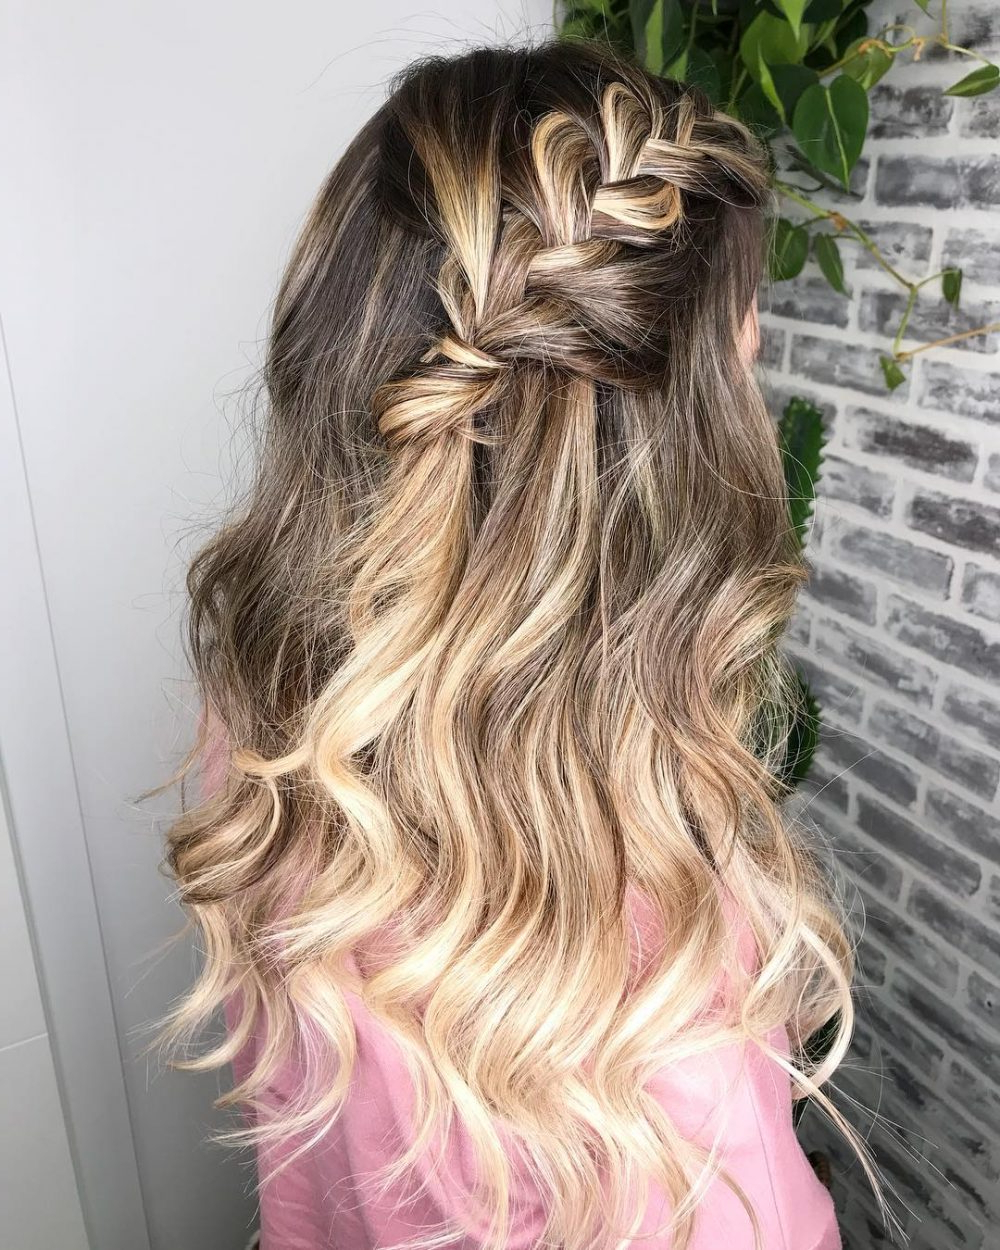 Top 44 Bohemian Hairstyle Ideas For 2018 Pertaining To Bohemian Short Hairstyles (View 21 of 25)